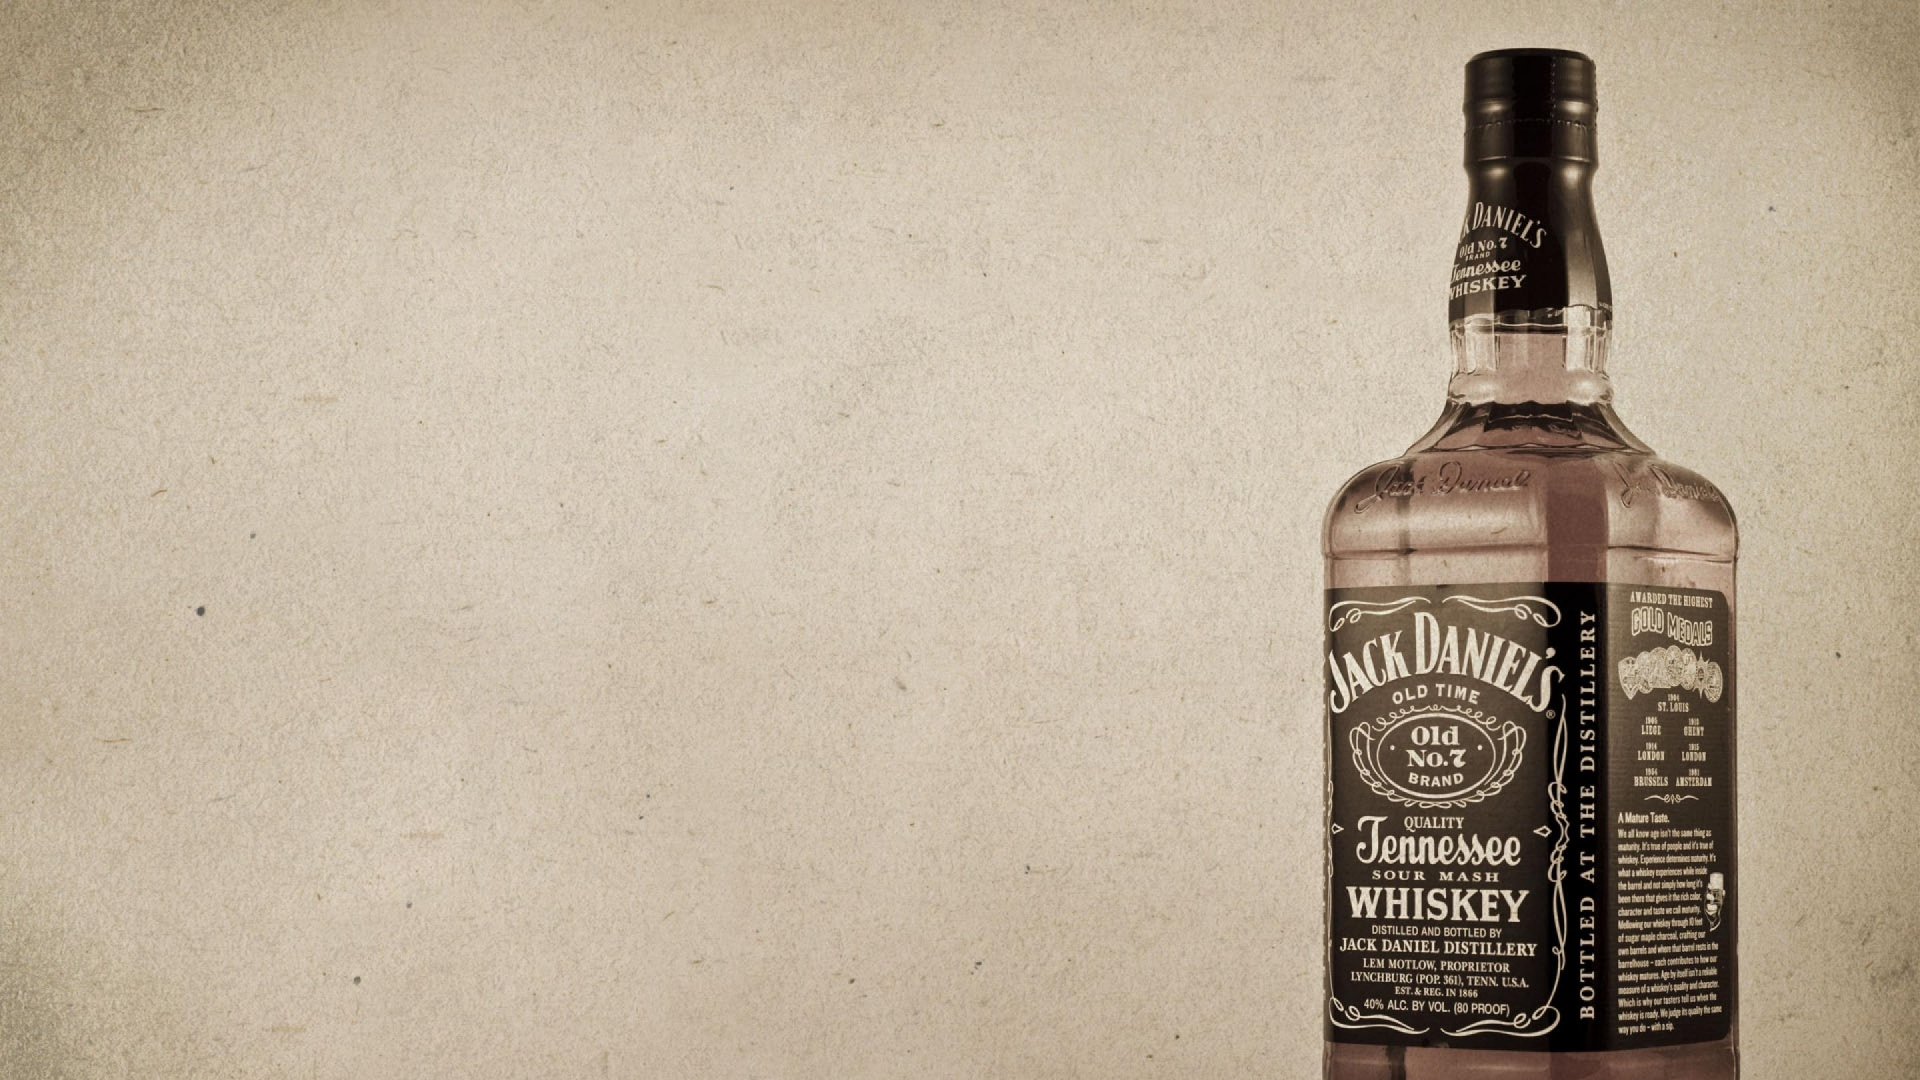 Download wallpaper 1920x1080 whiskey jack daniels bottle whiskey jack daniels bottle voltagebd